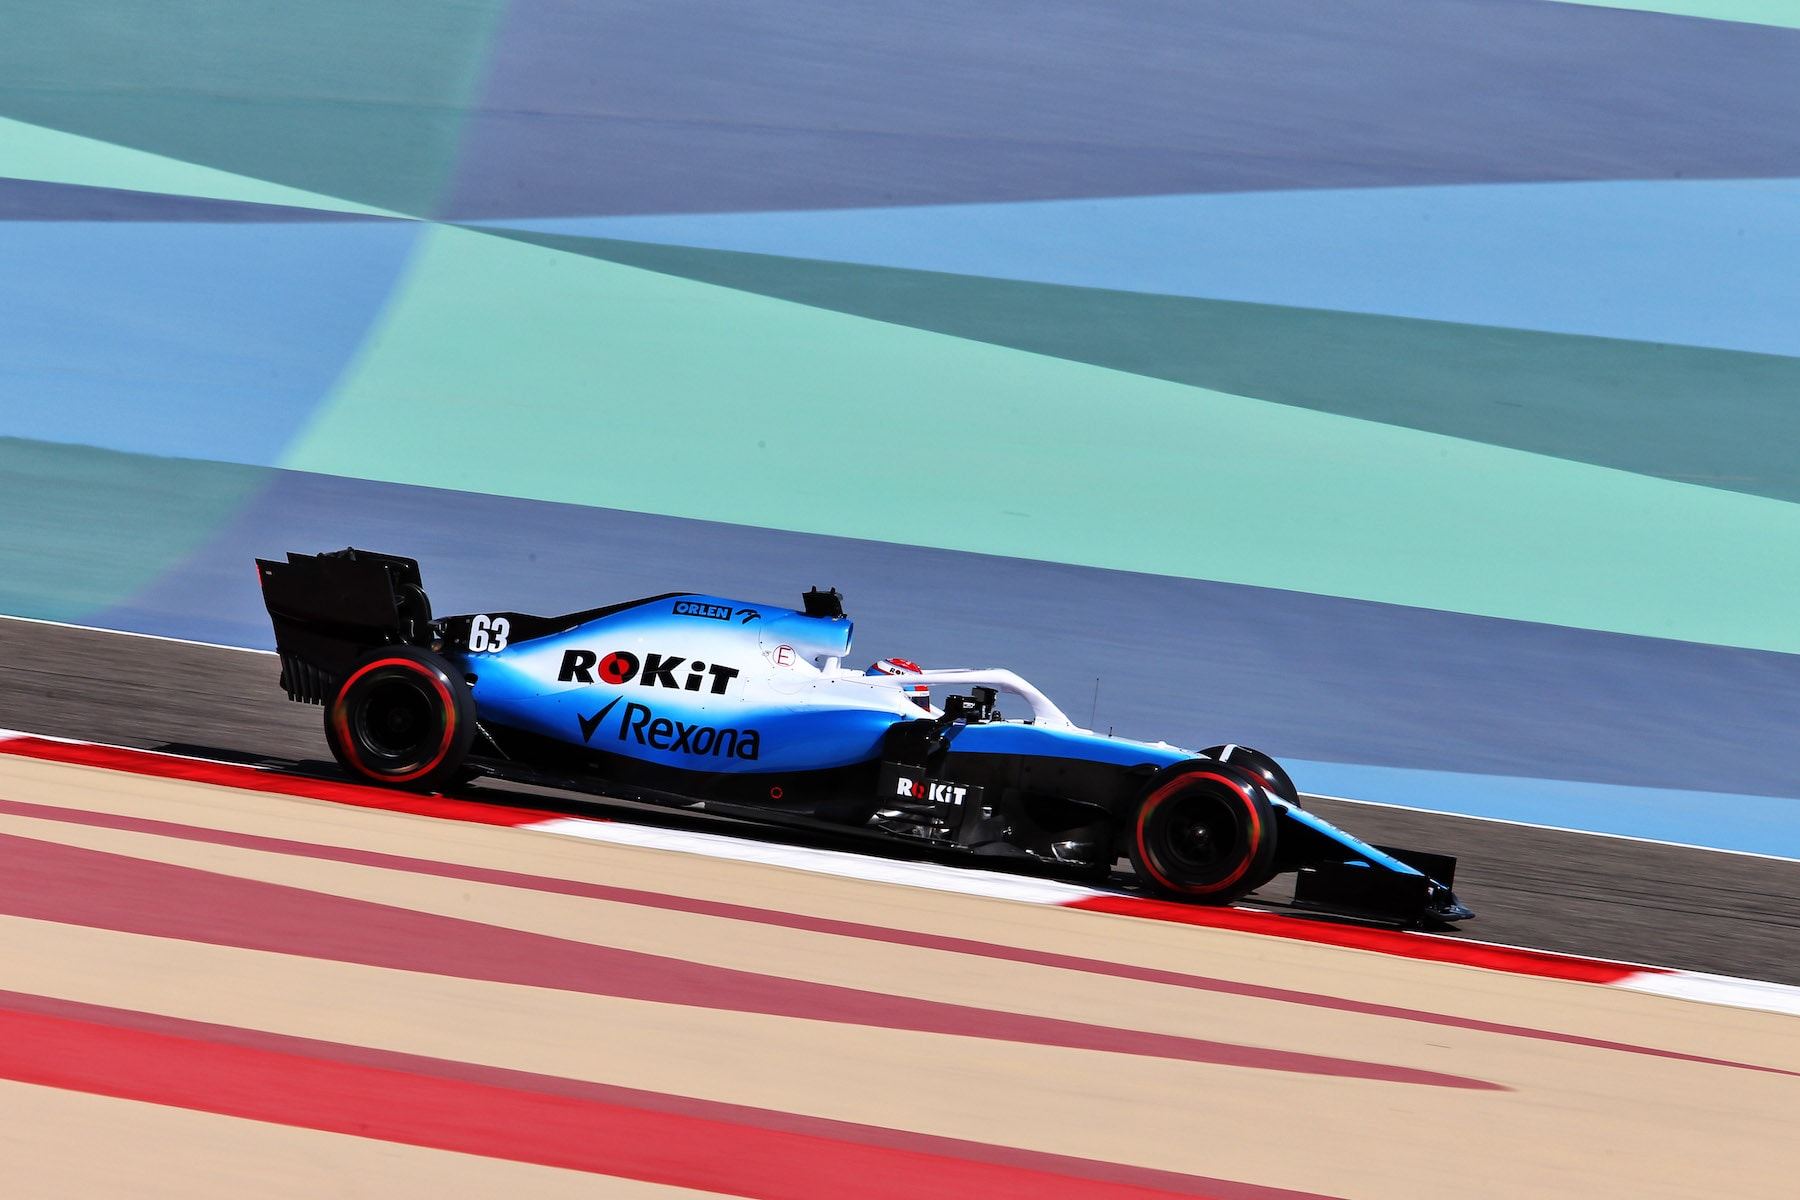 1 2019 George Russell | Williams FW42 | Bahrain GP FP1 1 copy.jpg